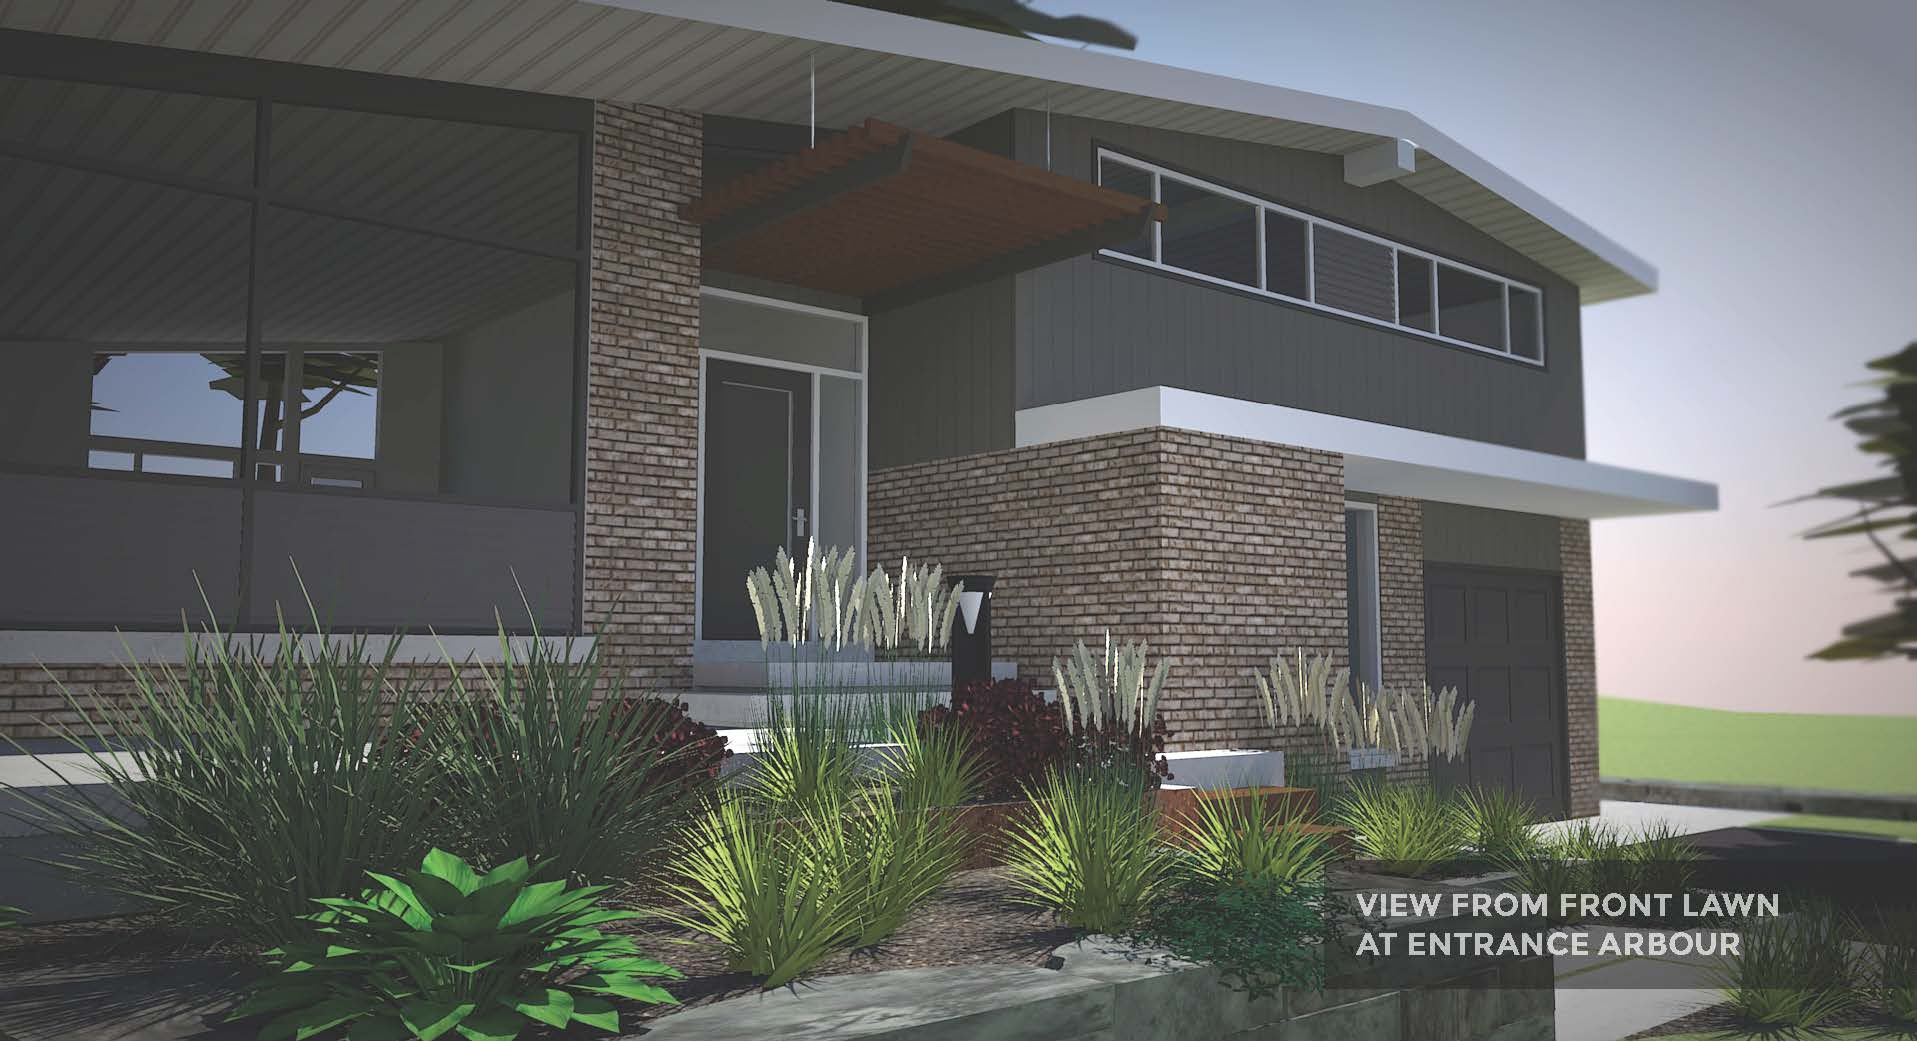 Front Lawn Entrance Concept Plan_Mid Century Home Revamp_Riverview Design Solutions_Architectual Design.jpg